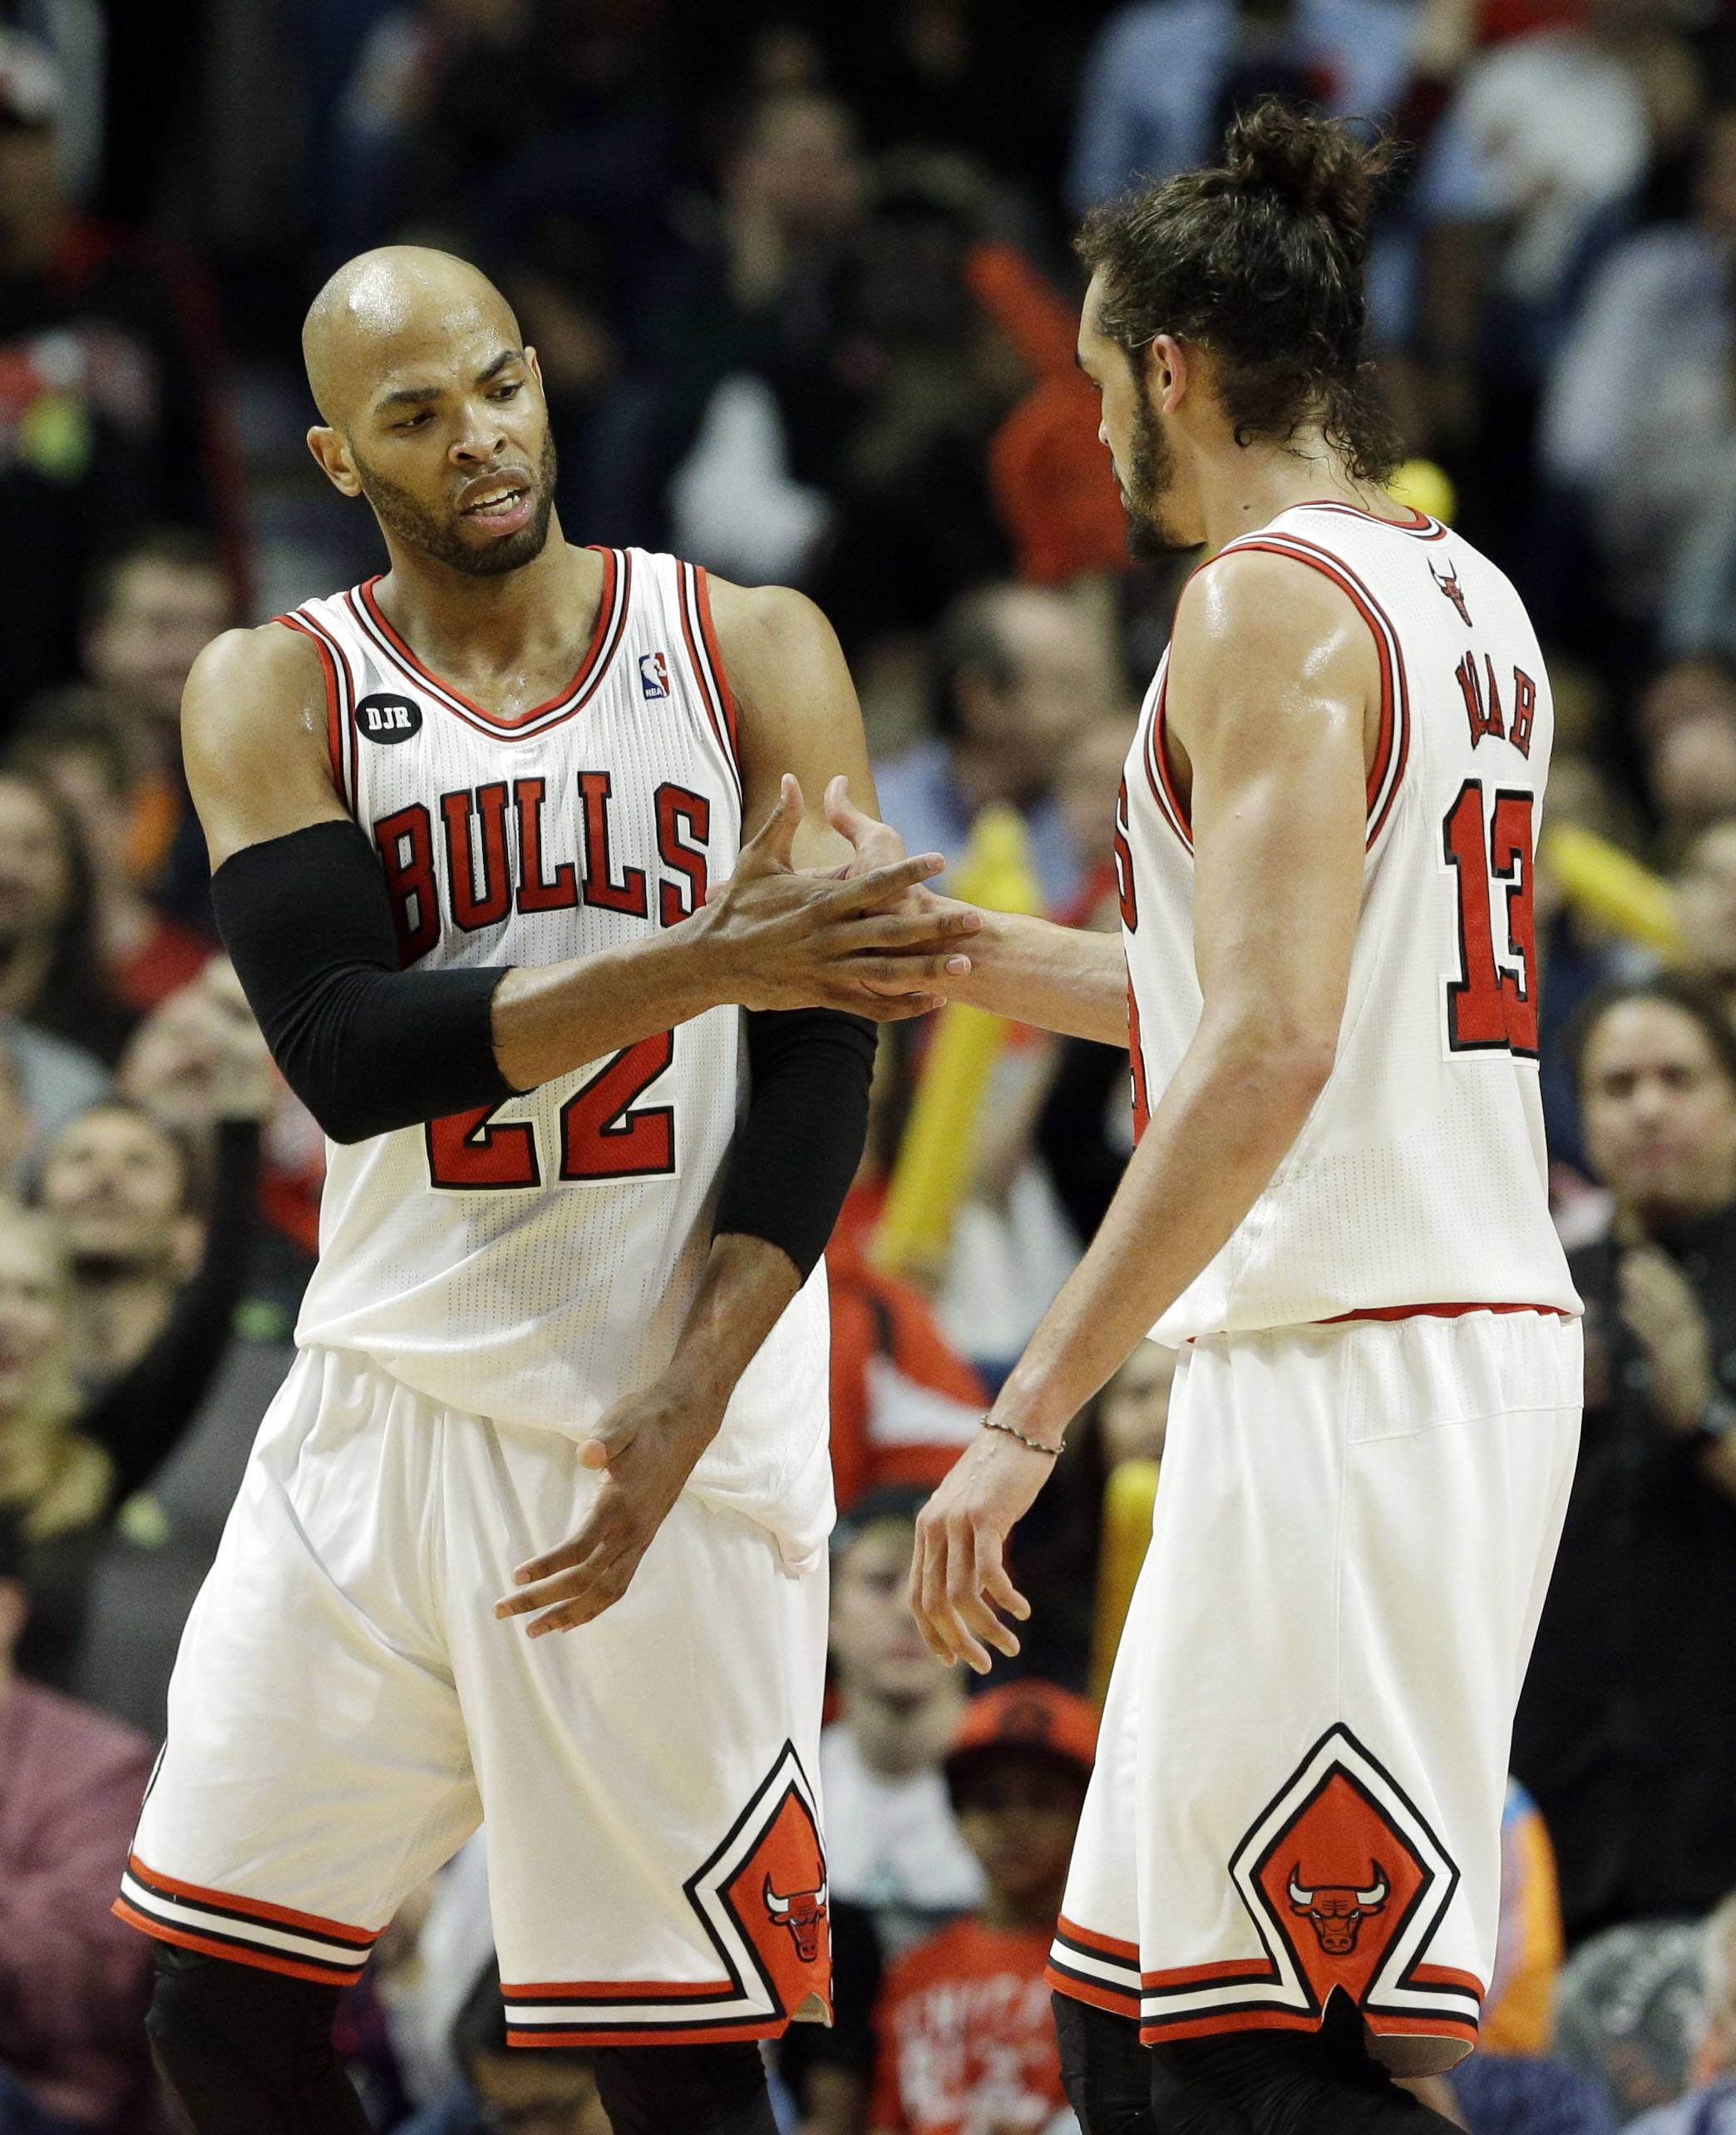 Chicago Bulls forward Taj Gibson, left, celebrates with center Joakim Noah after scoring a basket during the second half of an NBA basketball game against the Detroit Pistons in Chicago on Friday, April 11, 2014. The Bulls won 106-98.